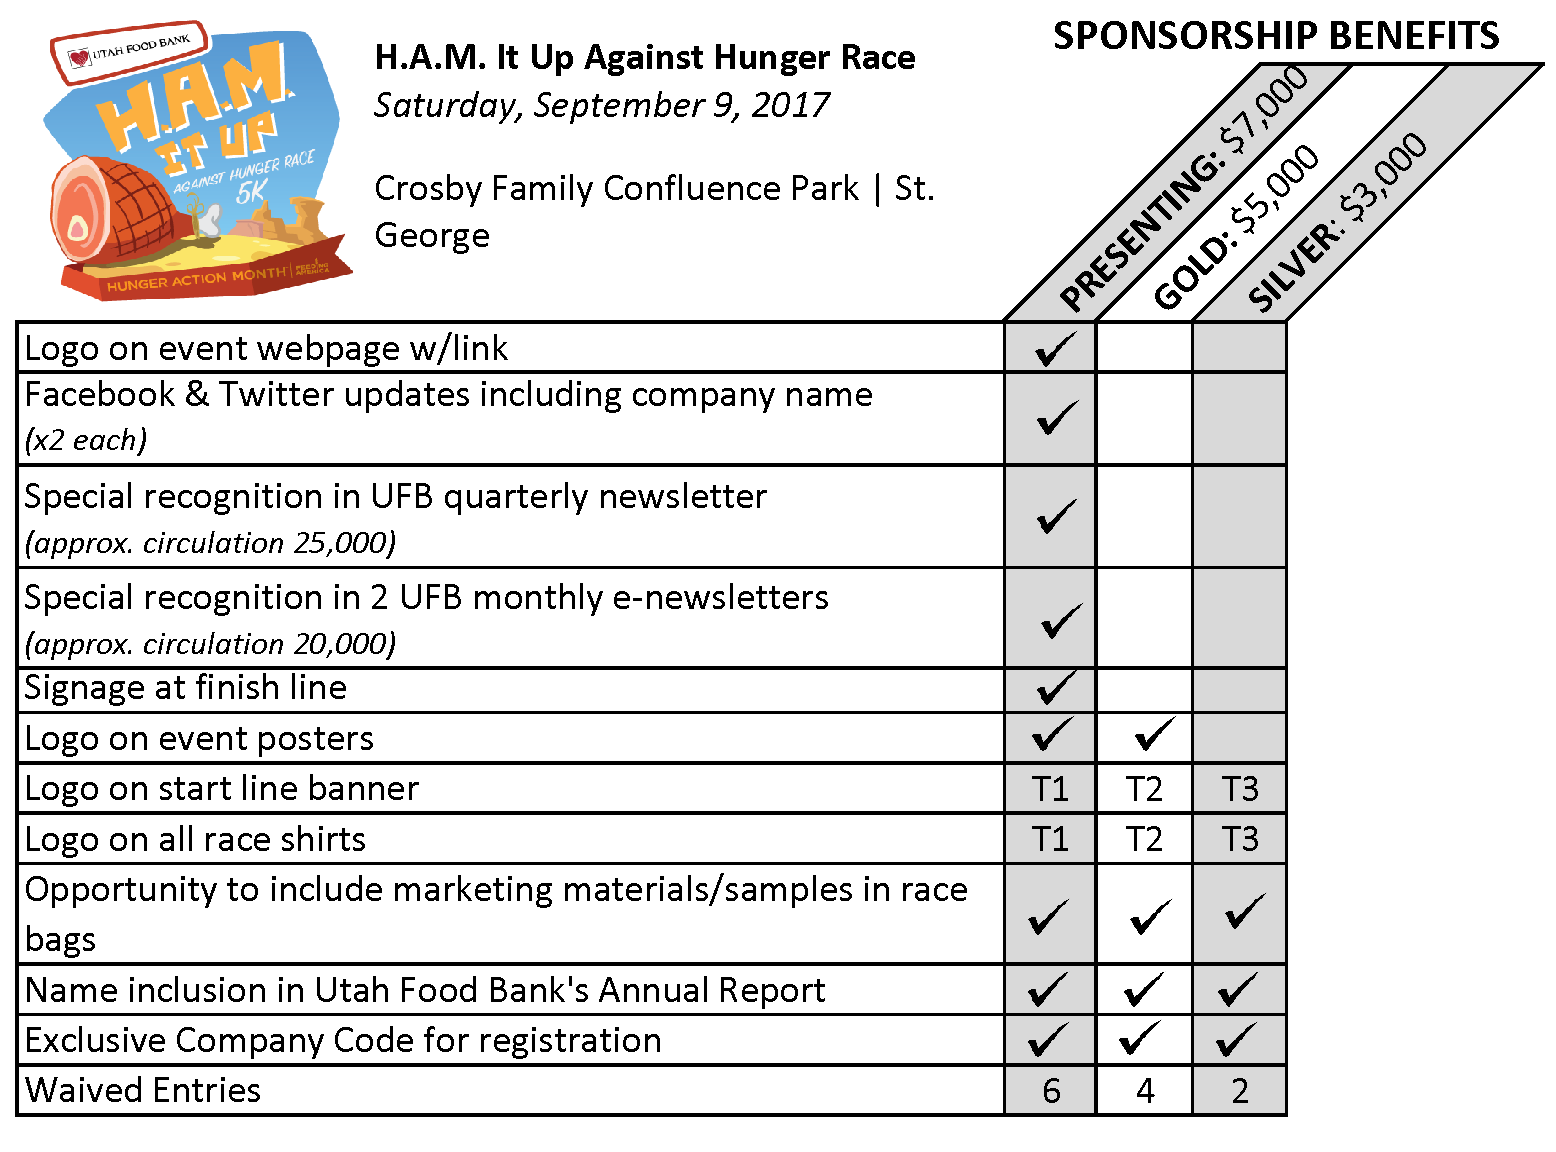 H.A.M. It up Against Hunger Race Sponsorship Benefits